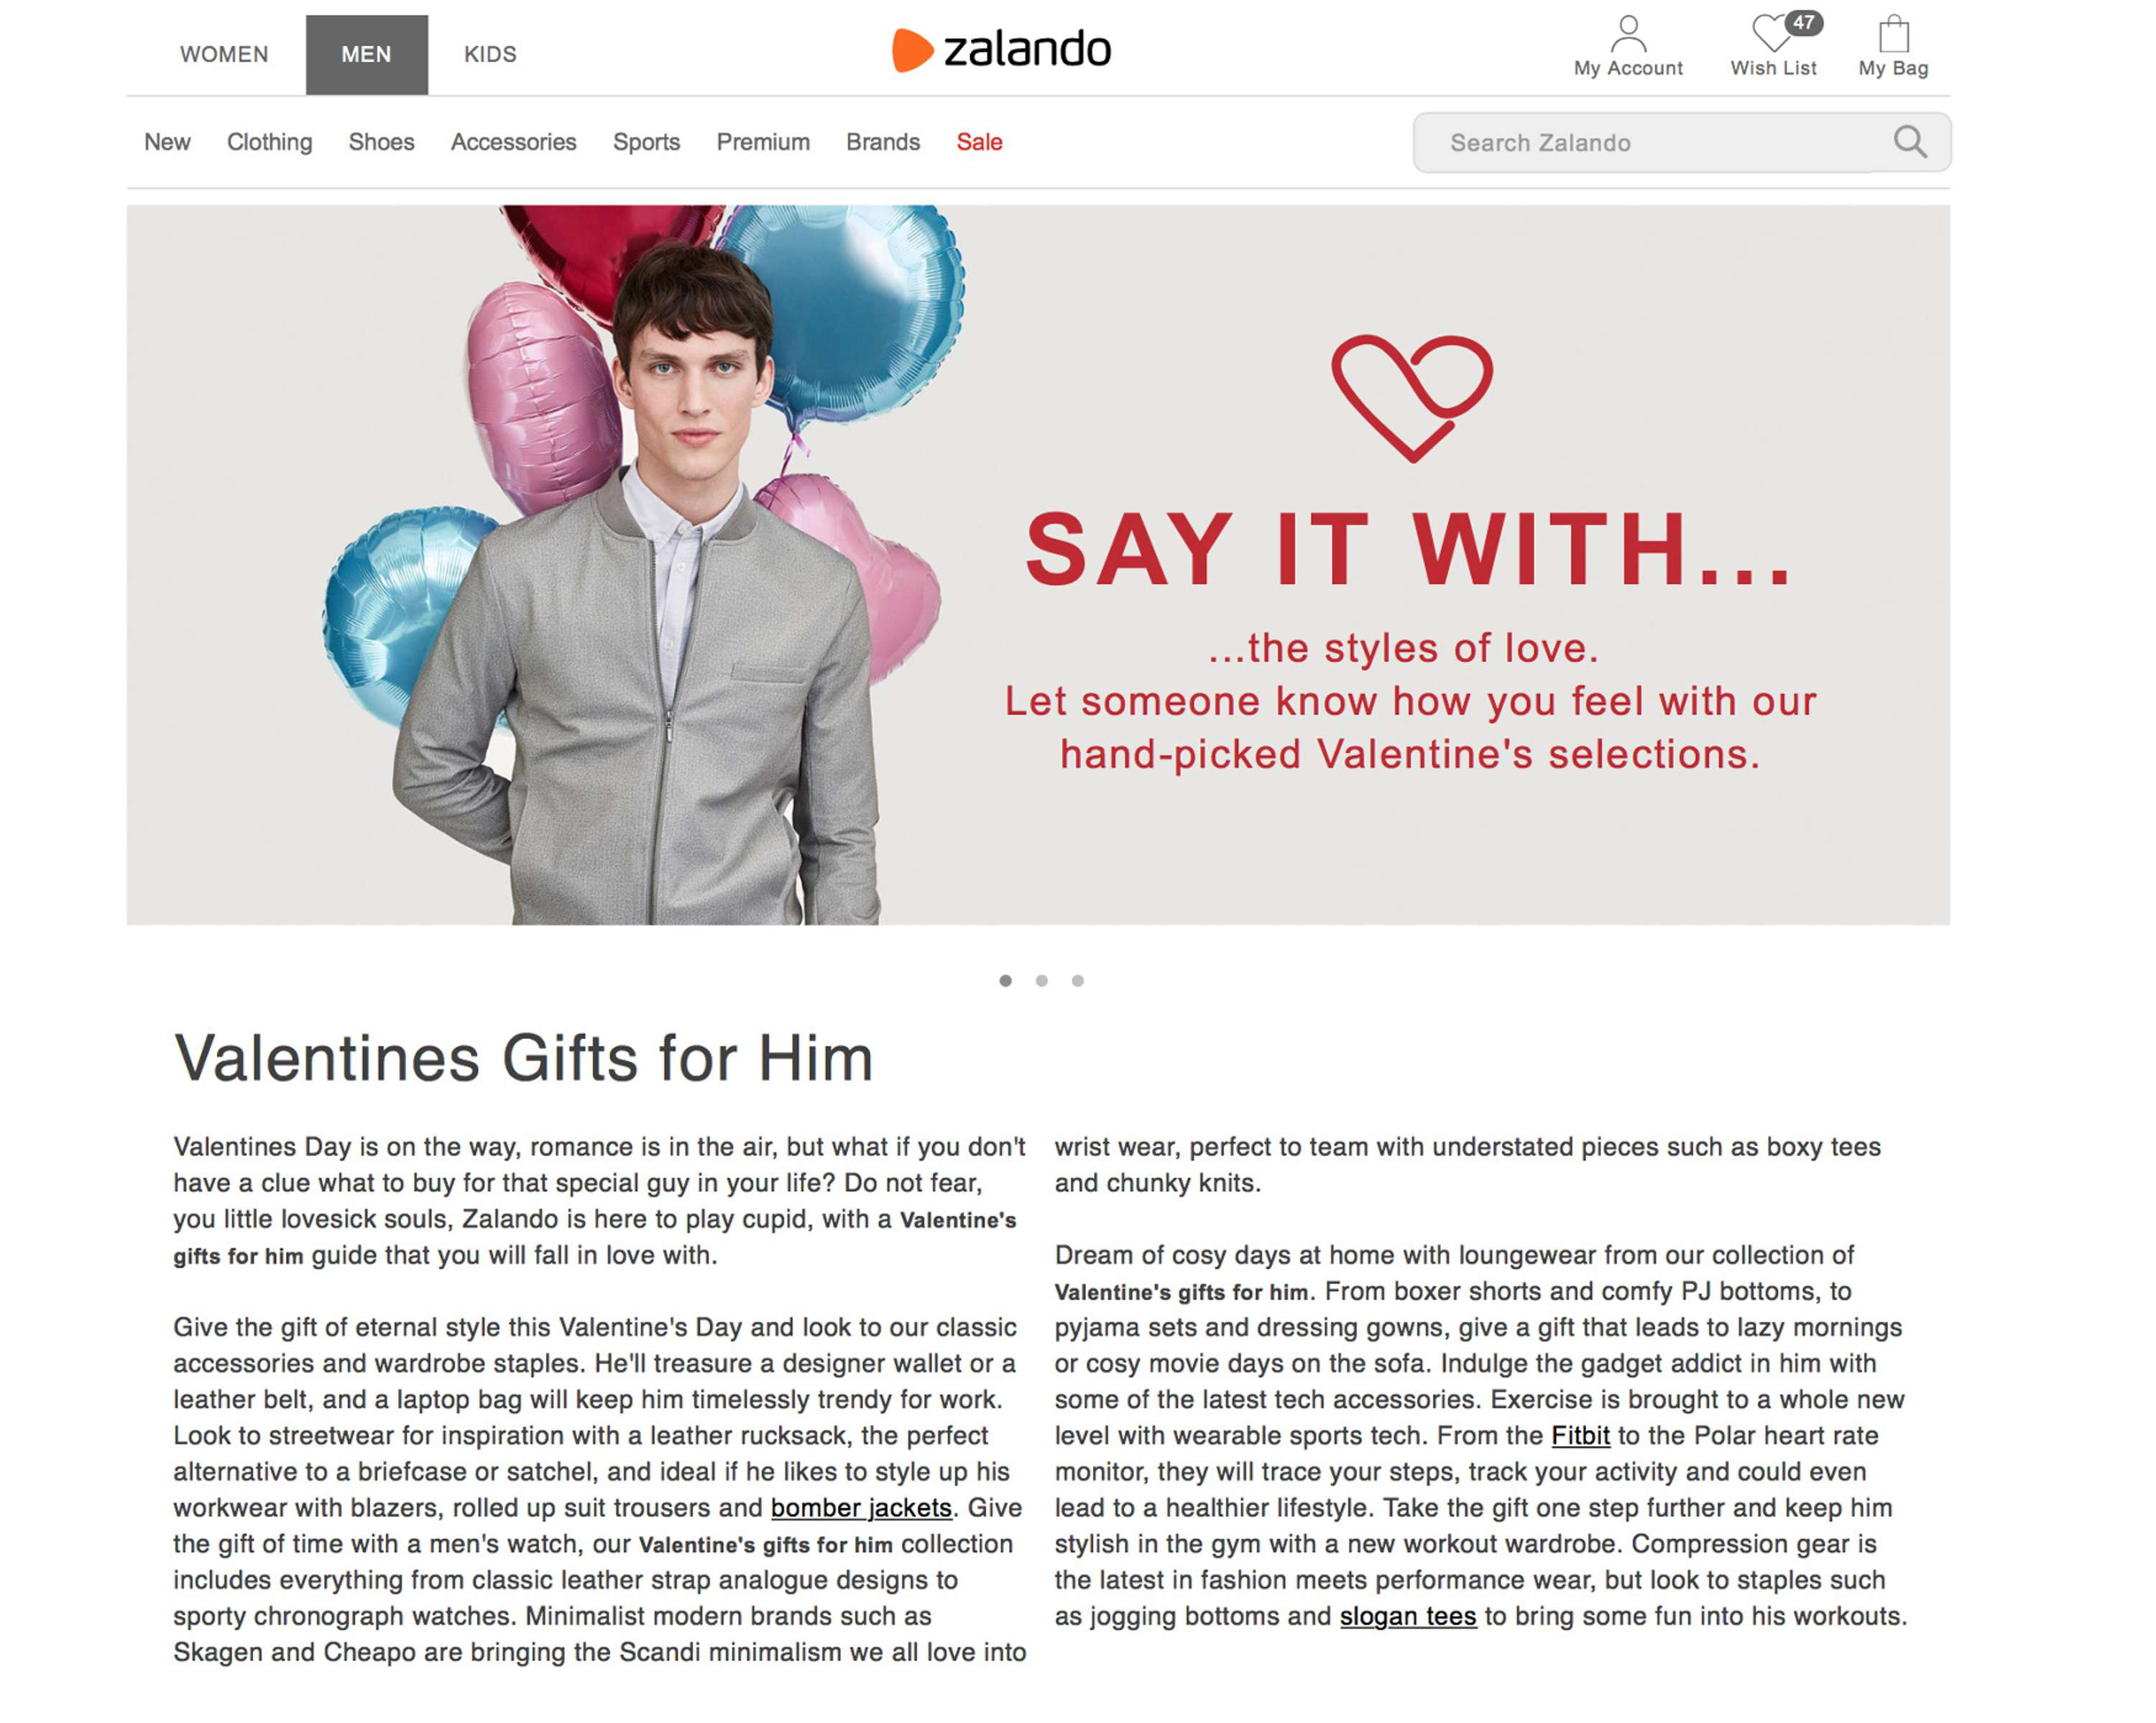 e5383c8c ... Zalando I covered everything from META descriptions and Valentine's  buying guides, London shopping guides and seasonal trend roundups, to  product launch ...